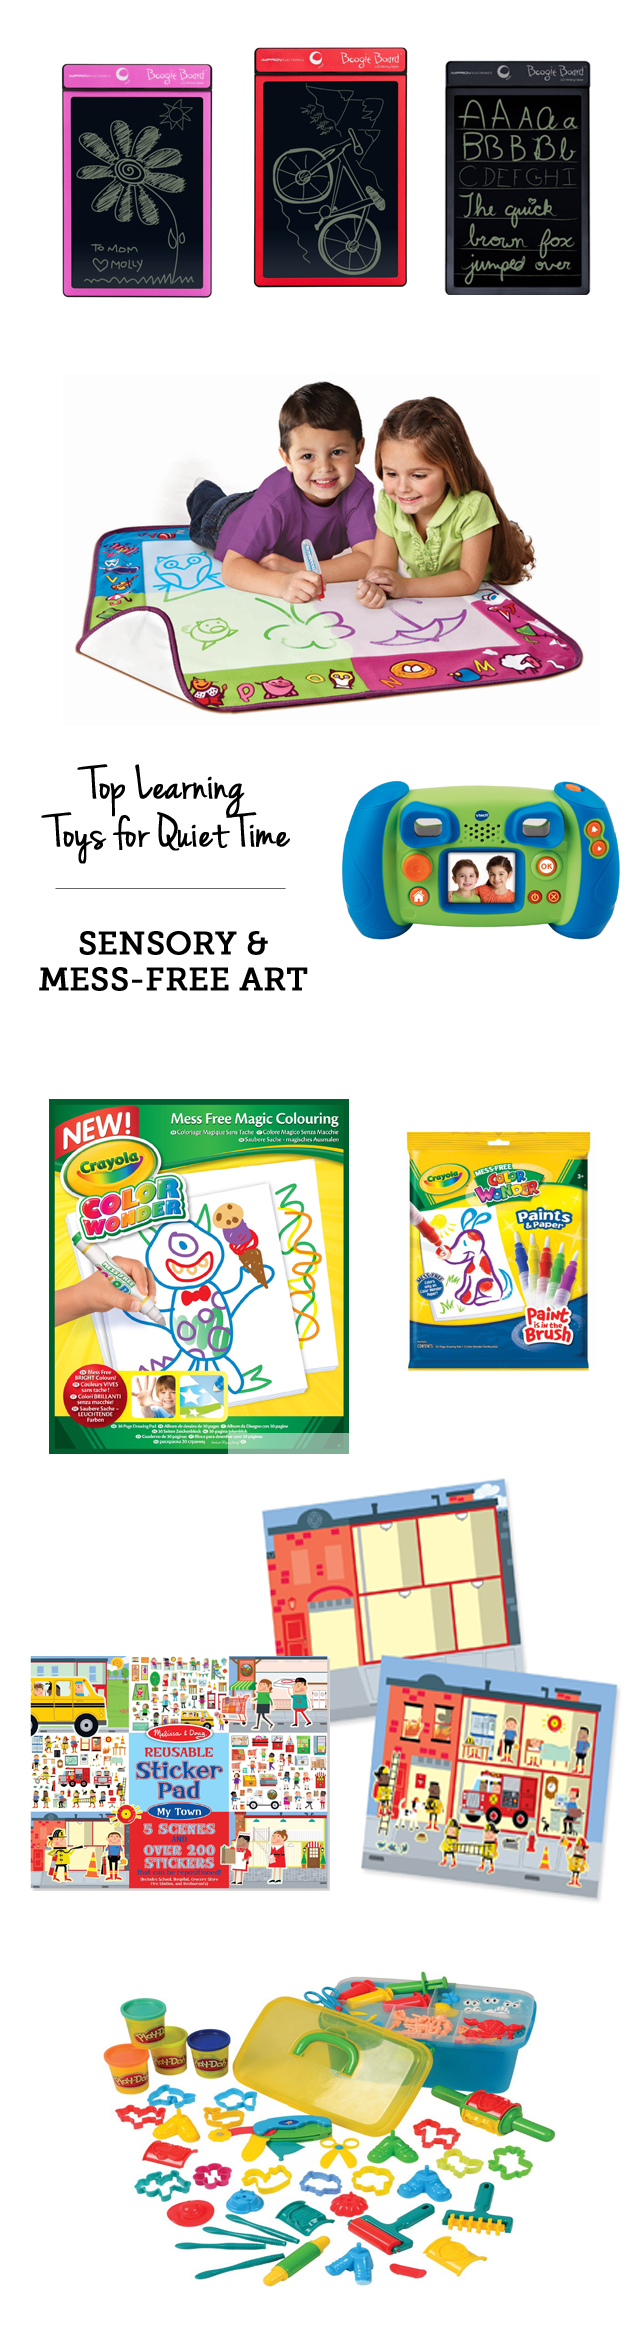 MPMK Toy Gift Guide: Top learning toys for quiet time: mess-free art supplies - Perfect when you need to cook dinner, do laundry, etc.!